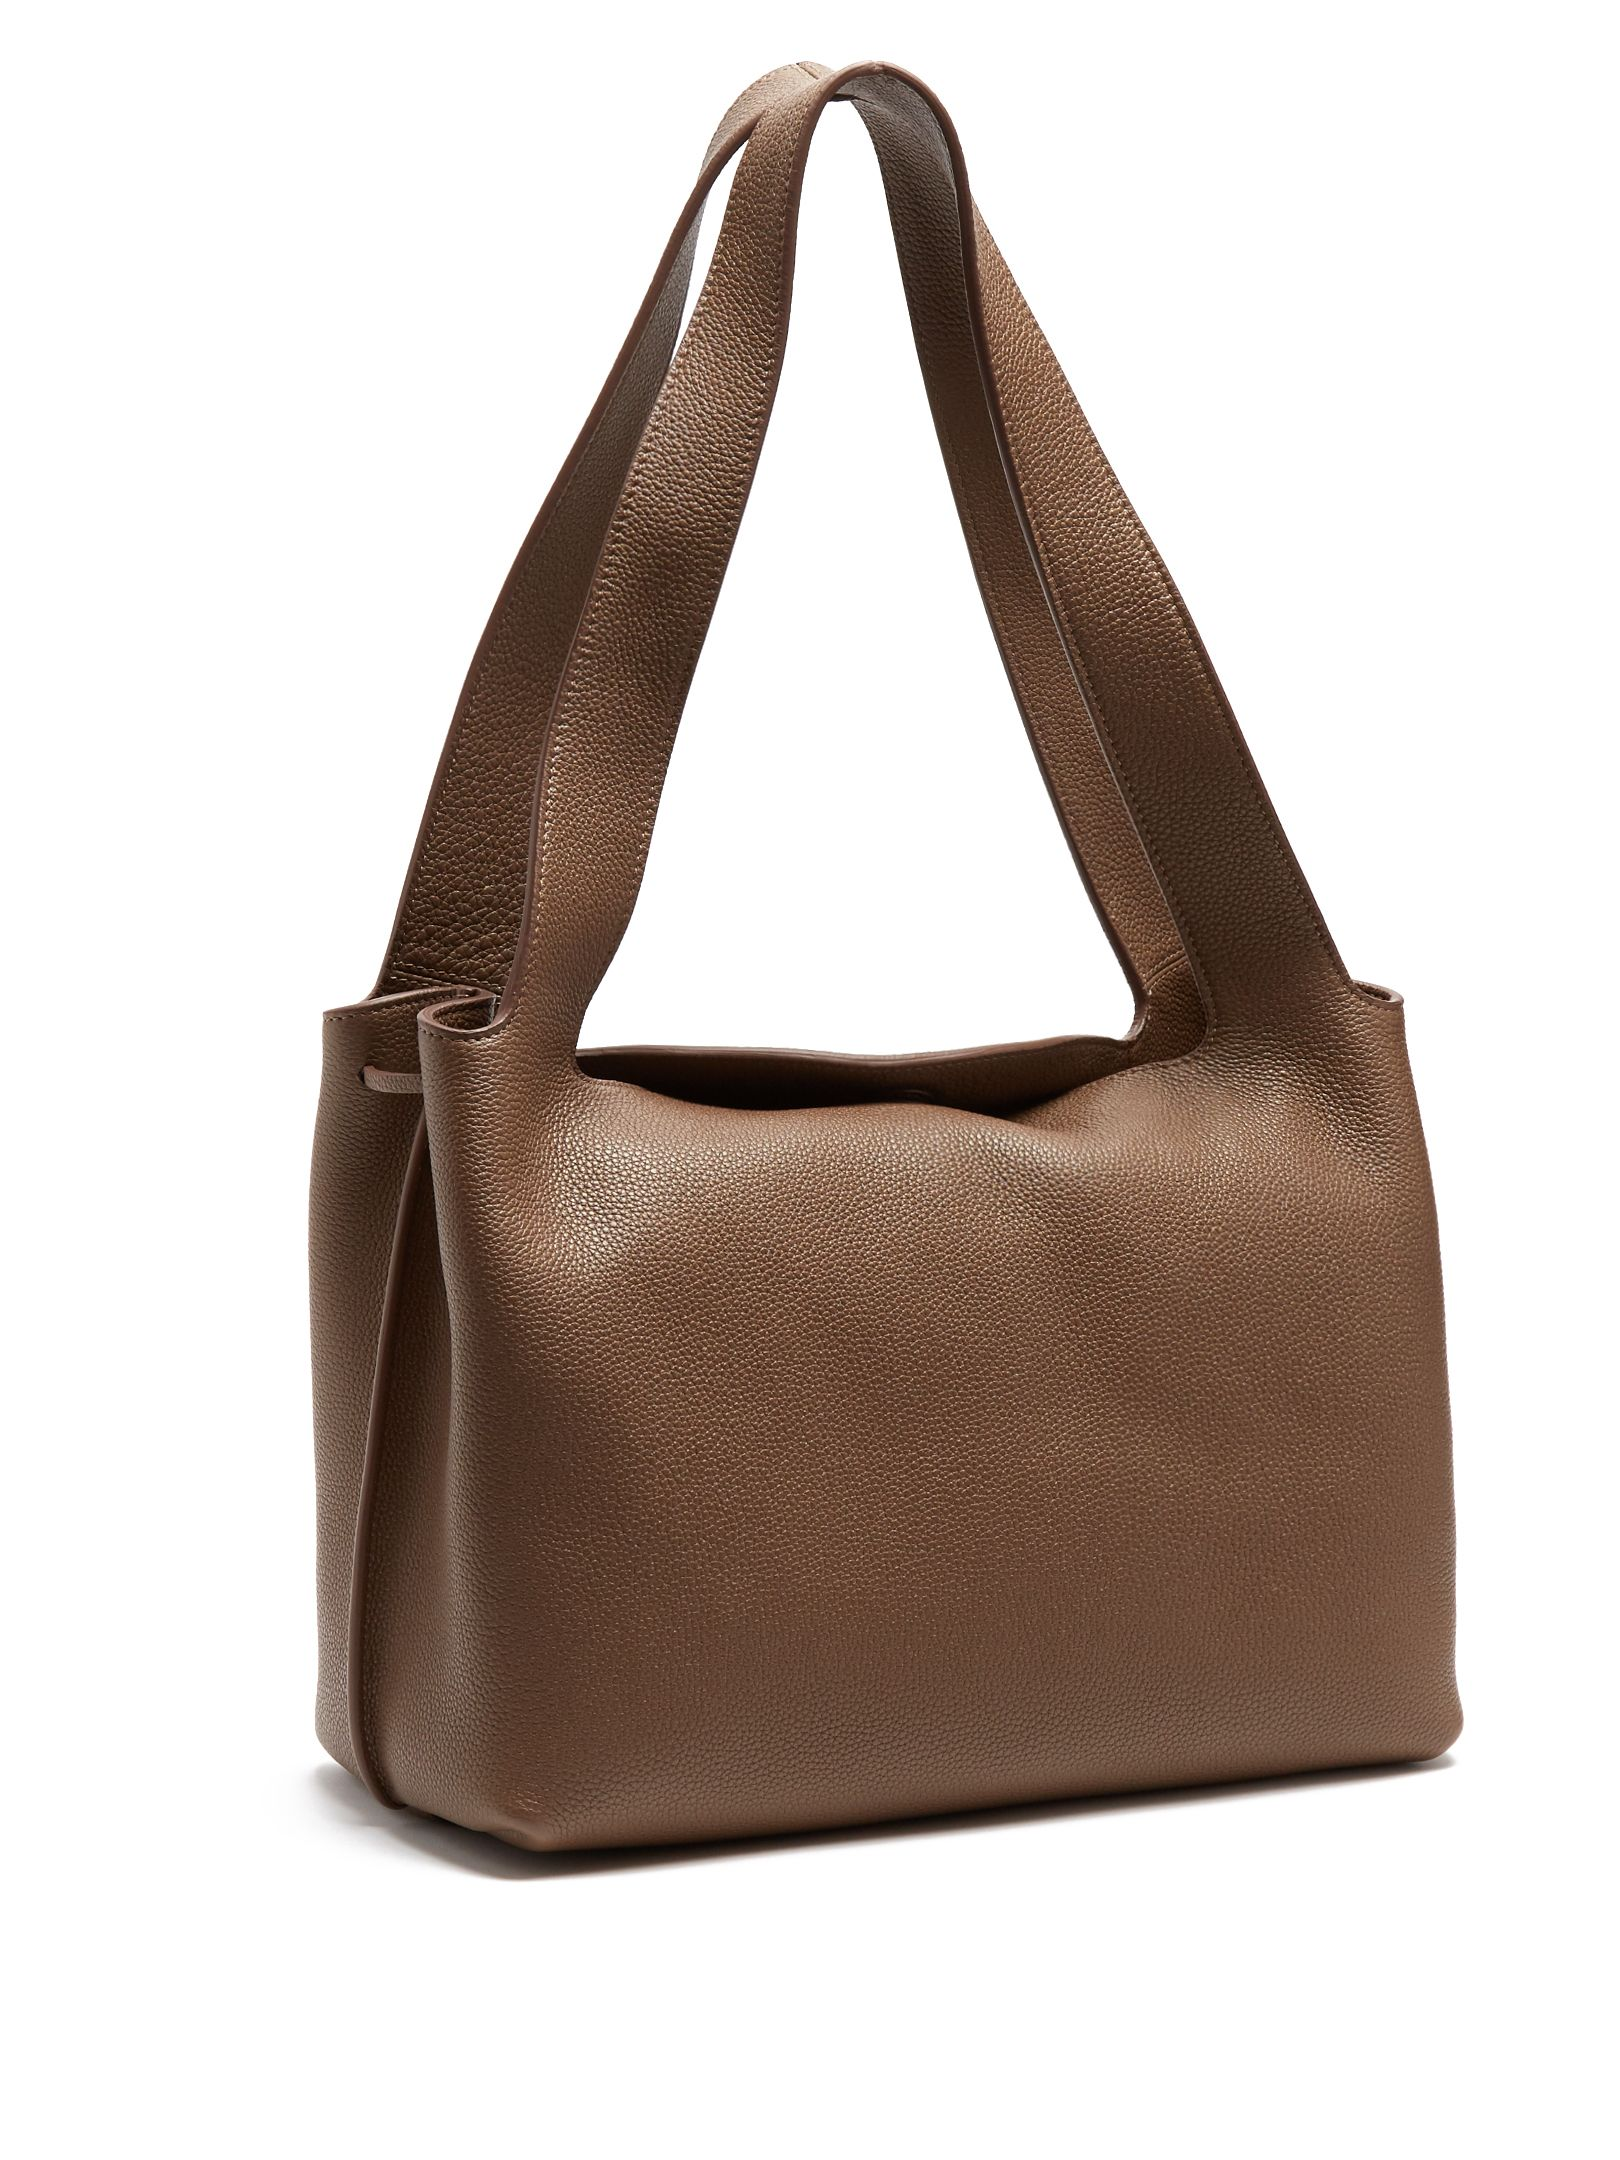 Duplex Small leather shoulder bag The Row fXEOSd1y